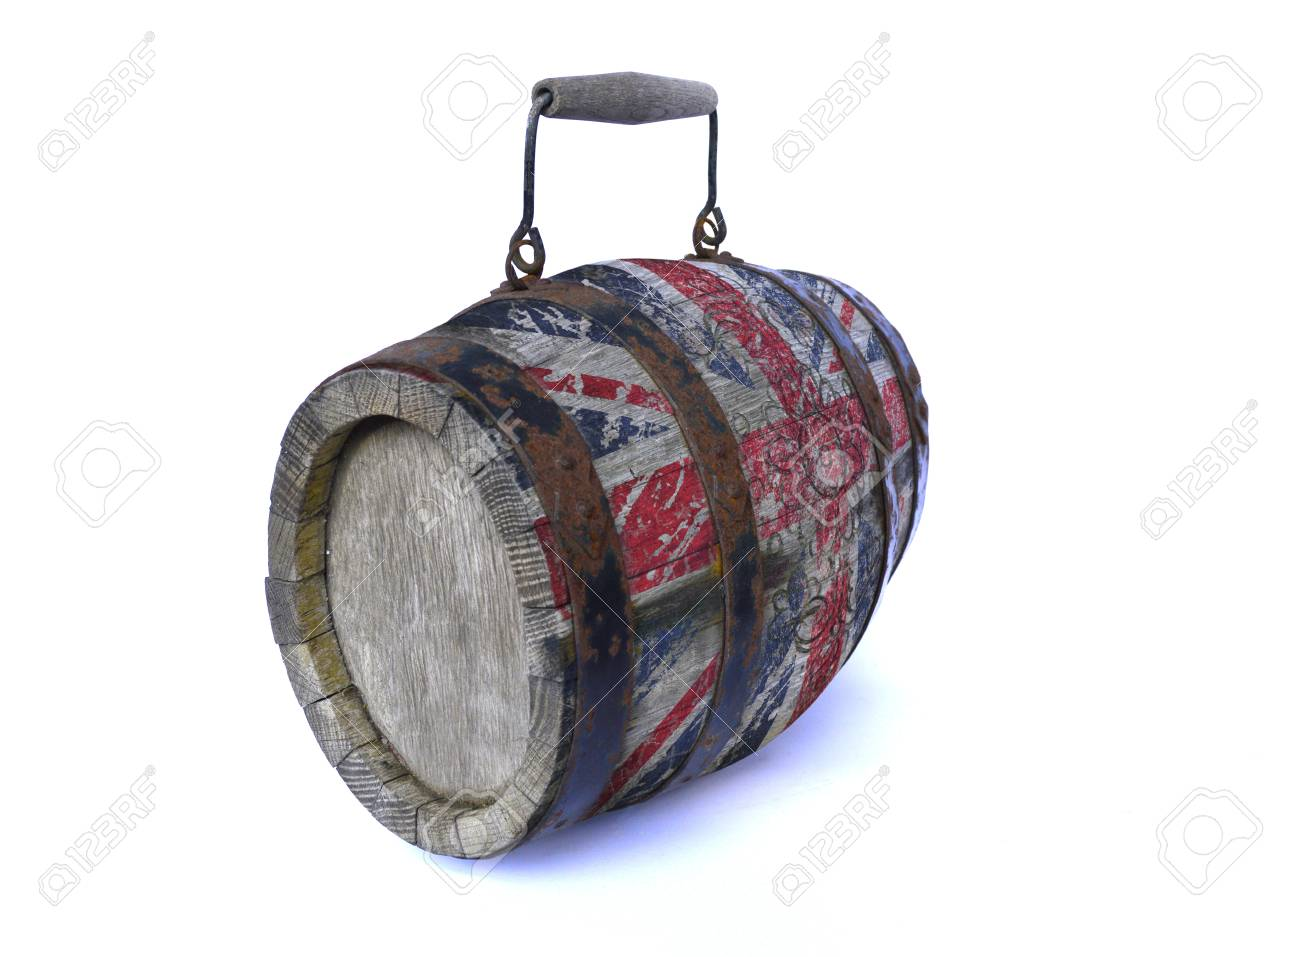 Flag Of England On An Old Wooden Barrel Stock Photo Picture And Royalty Free Image Image 104503435